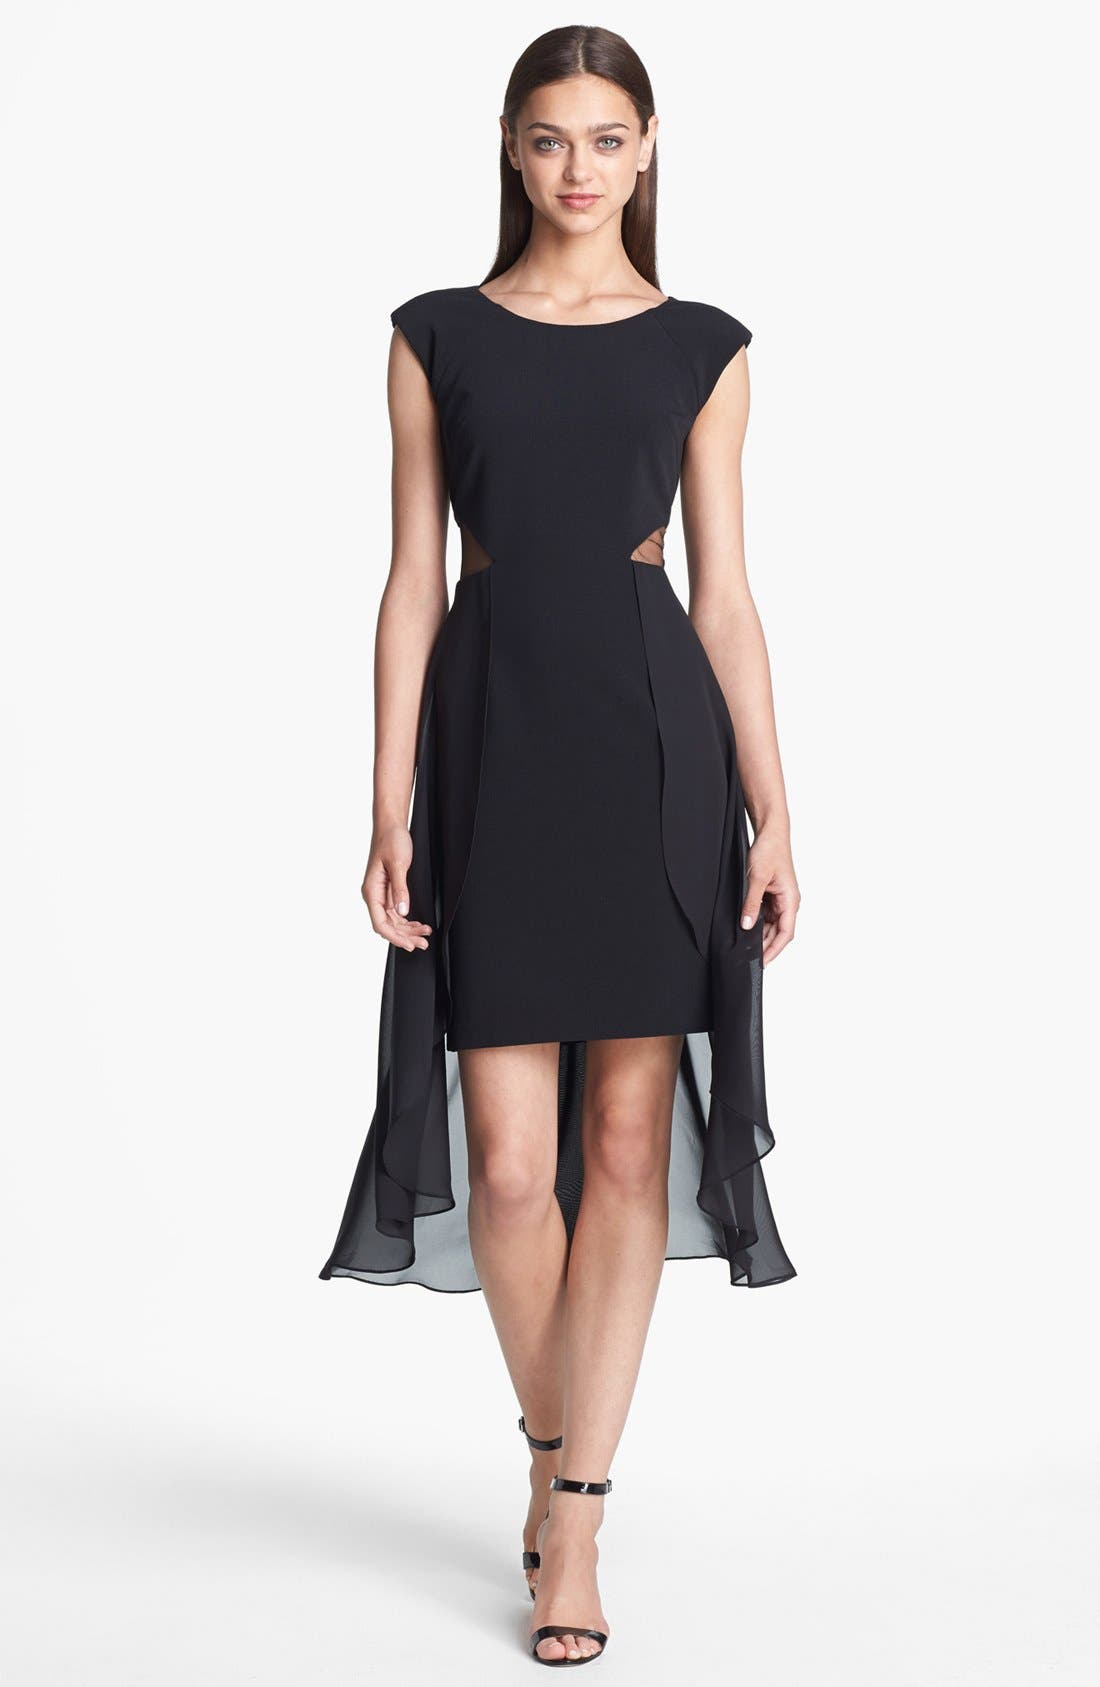 Alternate Image 1 Selected - Hailey by Adrianna Papell Cutout Chiffon Overlay Sheath Dress (Online Only)